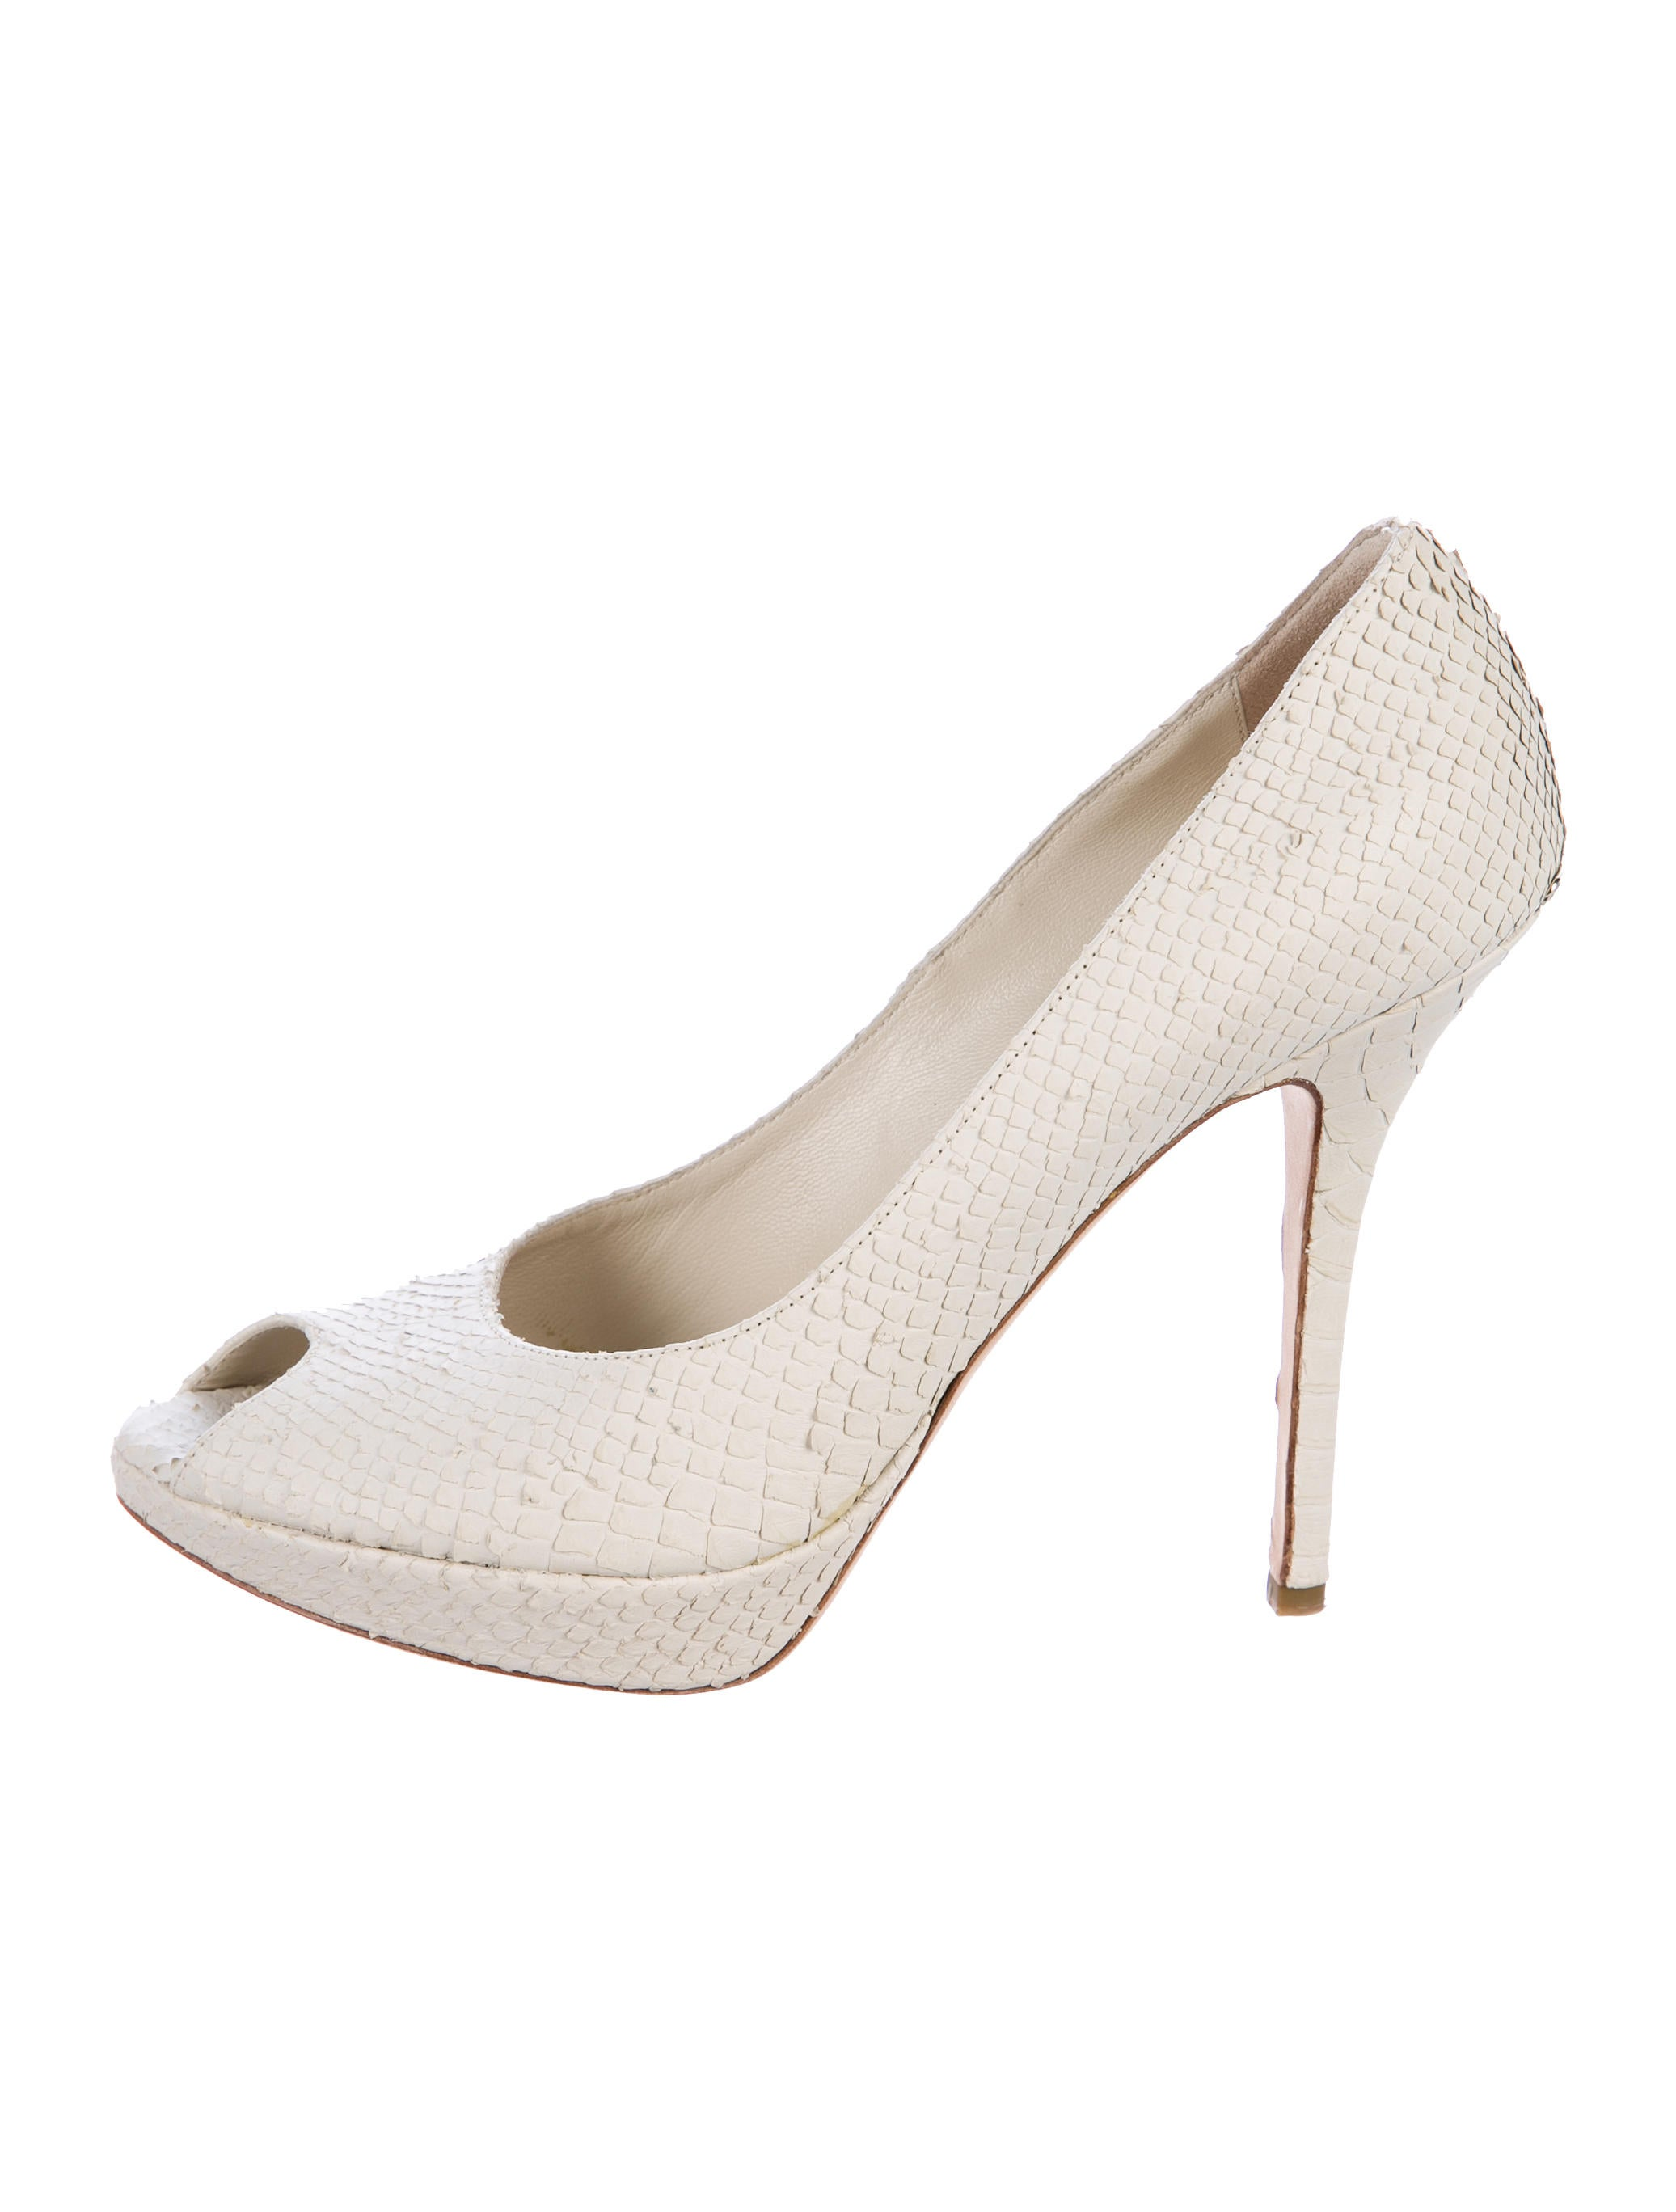 Christian Dior Snakeskin Pointed-Toe Pumps outlet footlocker pictures lowest price cheap online wiki for sale cheap sale low cost 1rDVmR